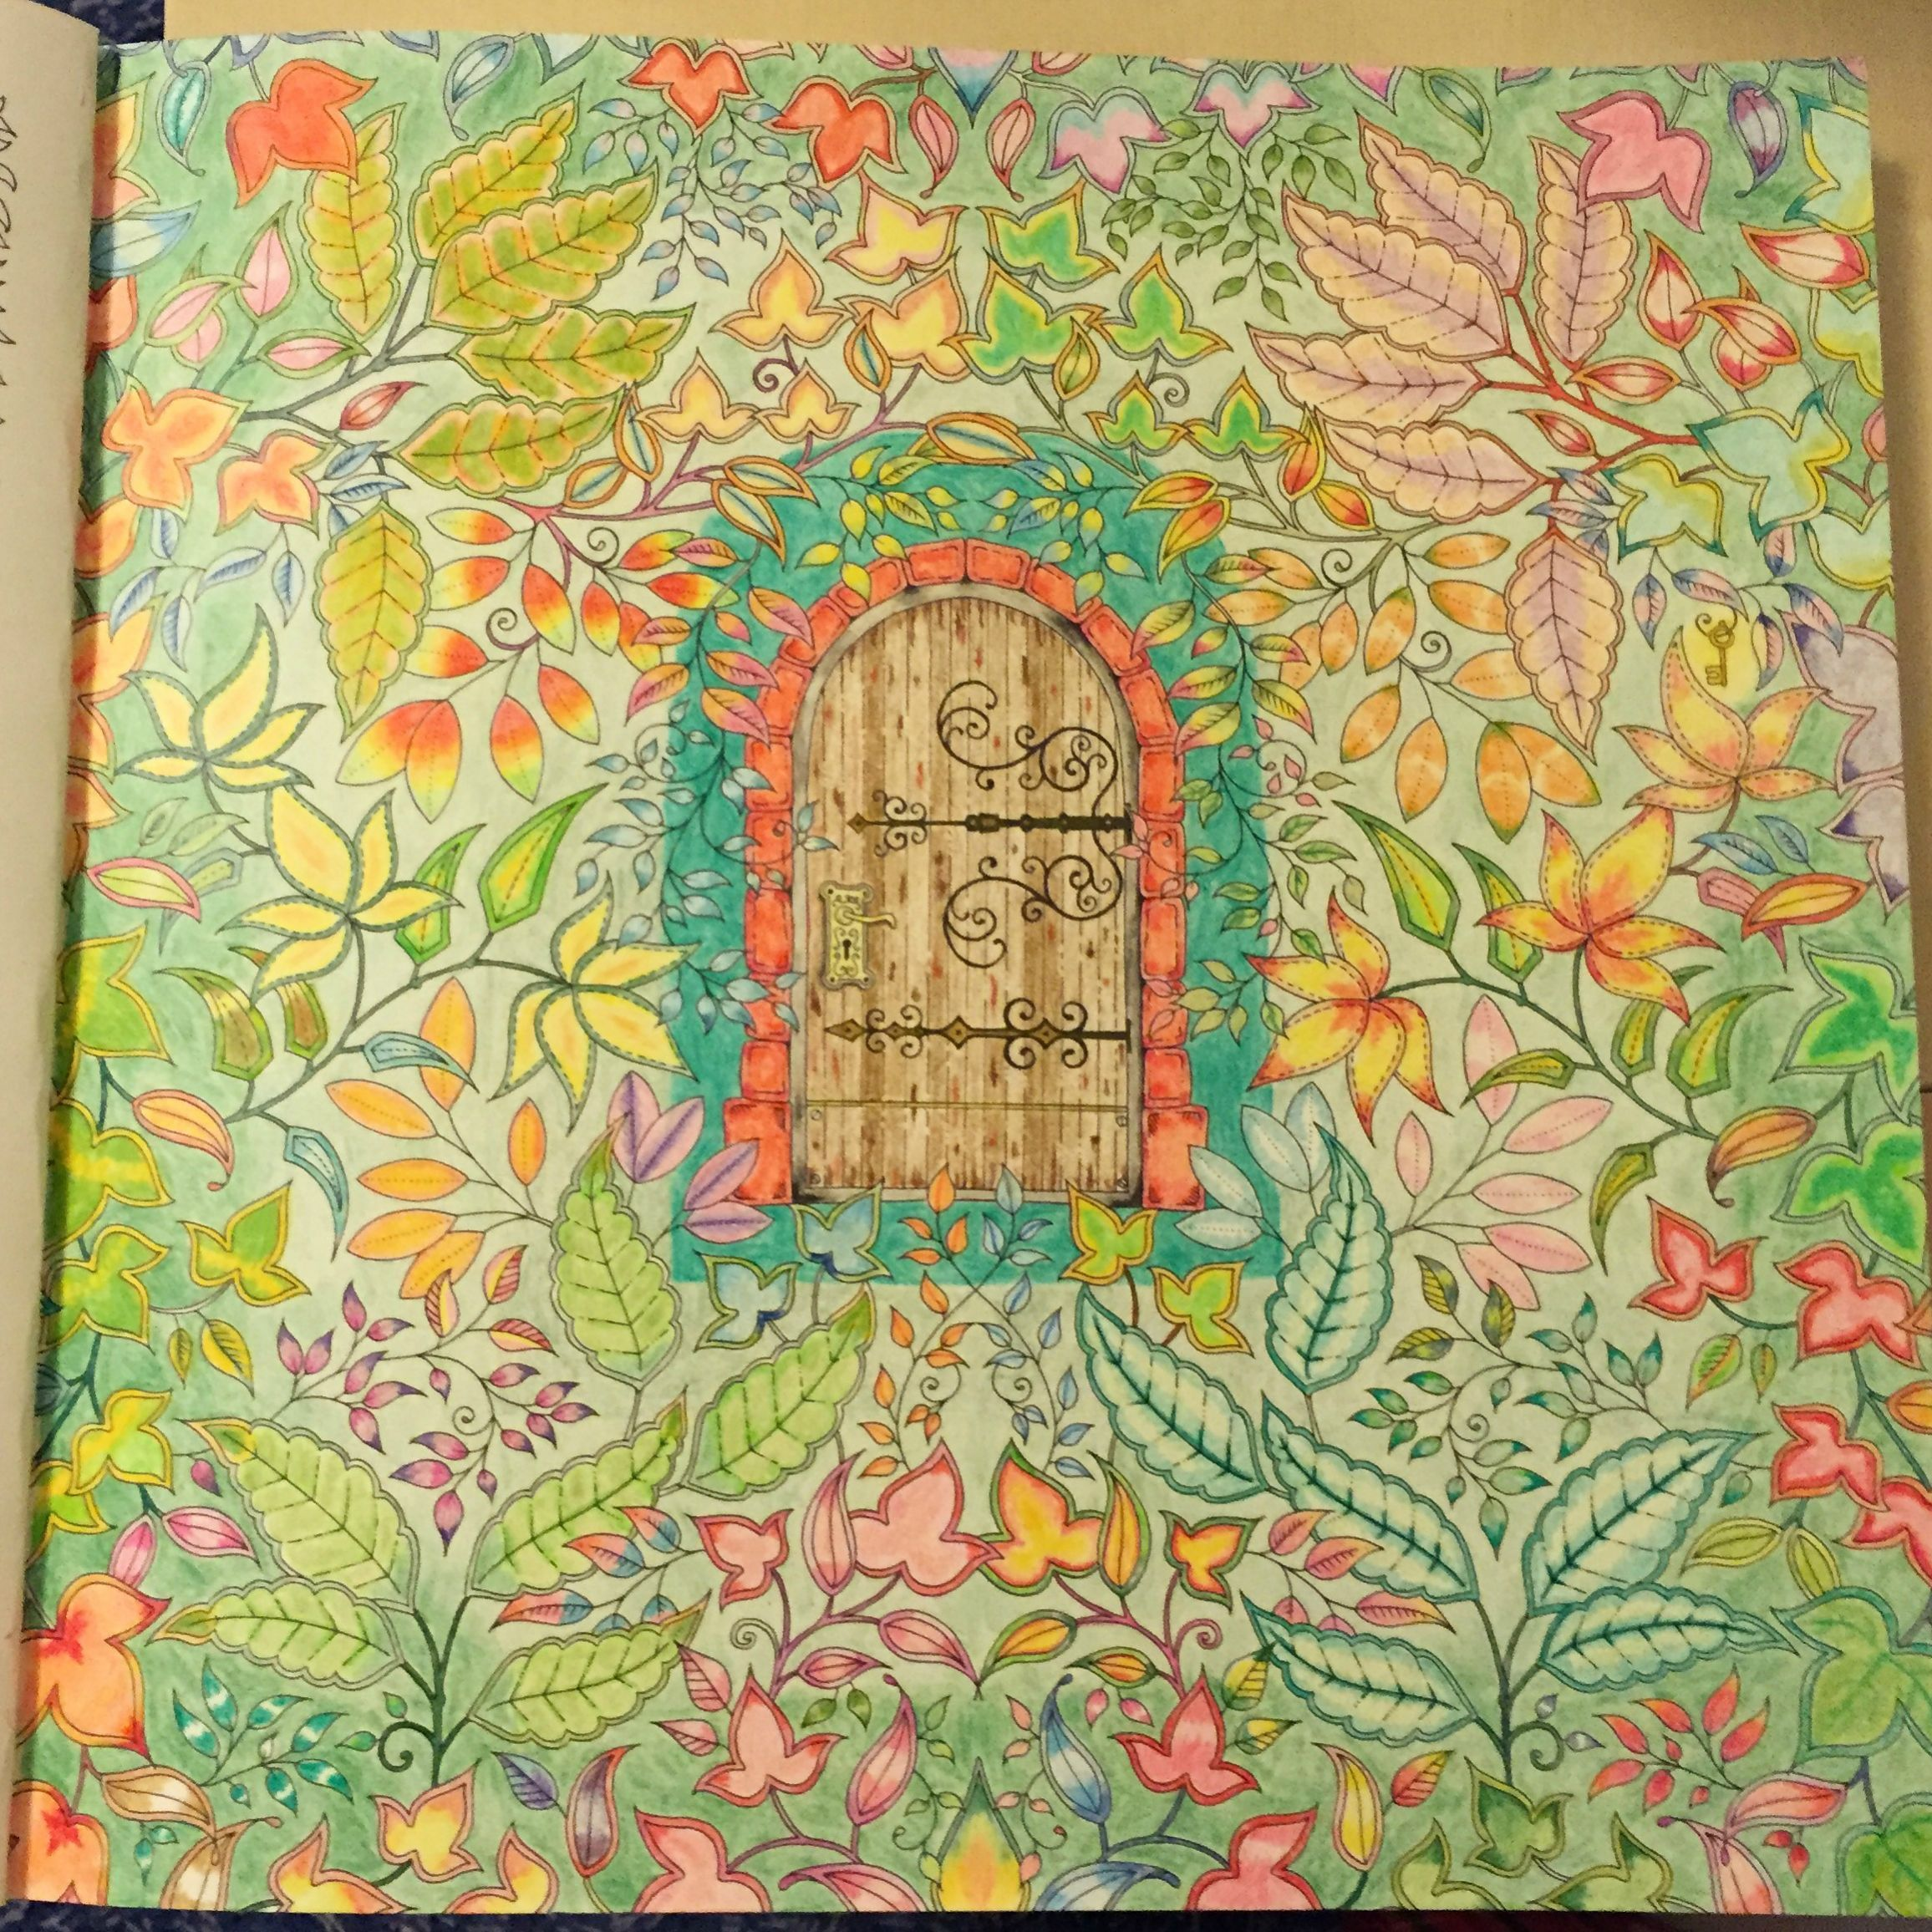 A Page From Secret Garden Colored By Reddit User U Nheea Coloring Inspiration